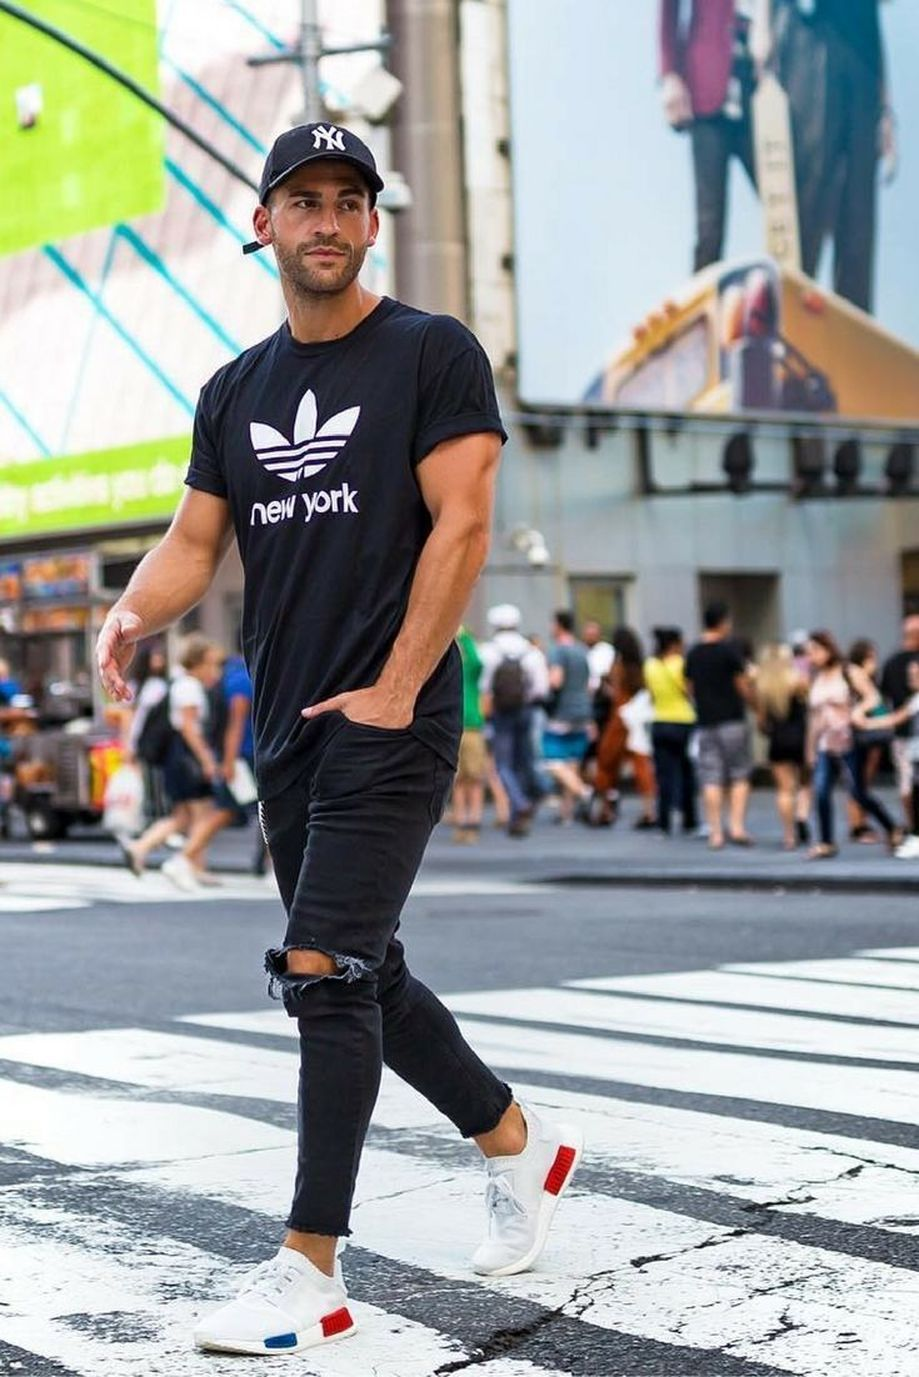 Cool Casual Men S Fashions Summer Outfits Ideas 44 Fashion Best